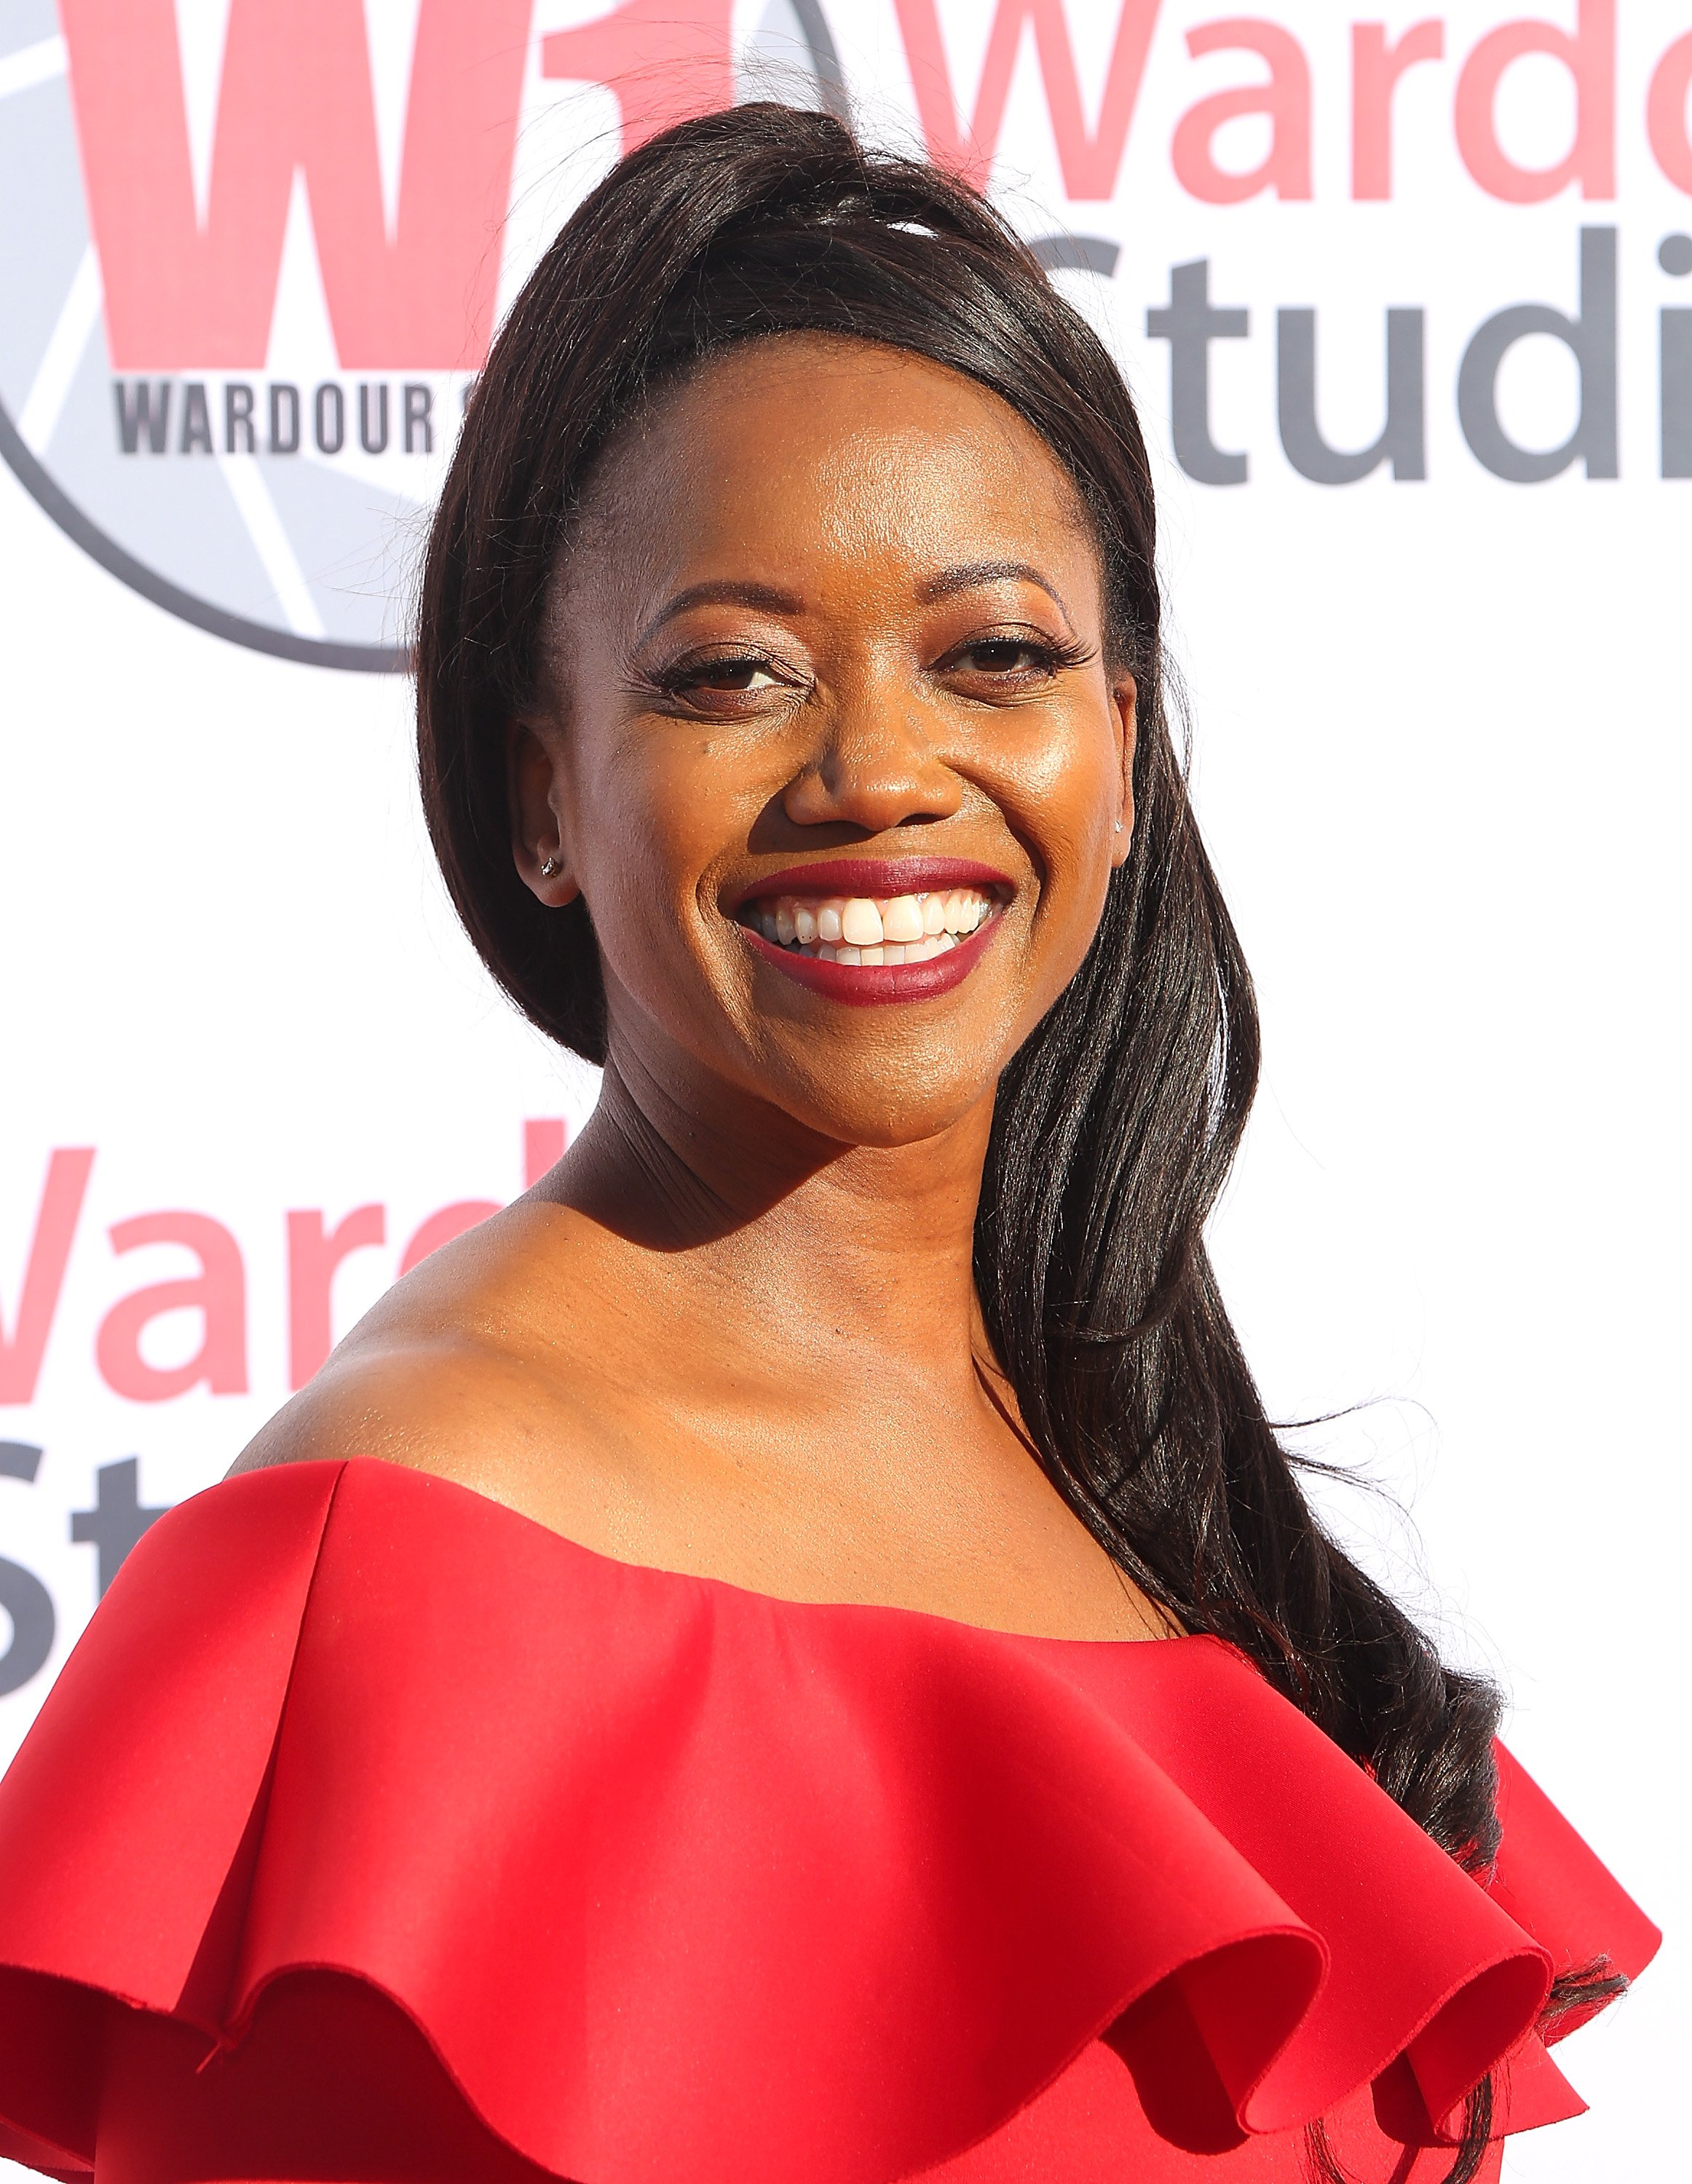 Erika Alexander attends Hollywood Stars Gala Academy Awards Viewing Party at Waldorf Astoria Beverly Hills on March 4, 2018. | Photo: Getty Images